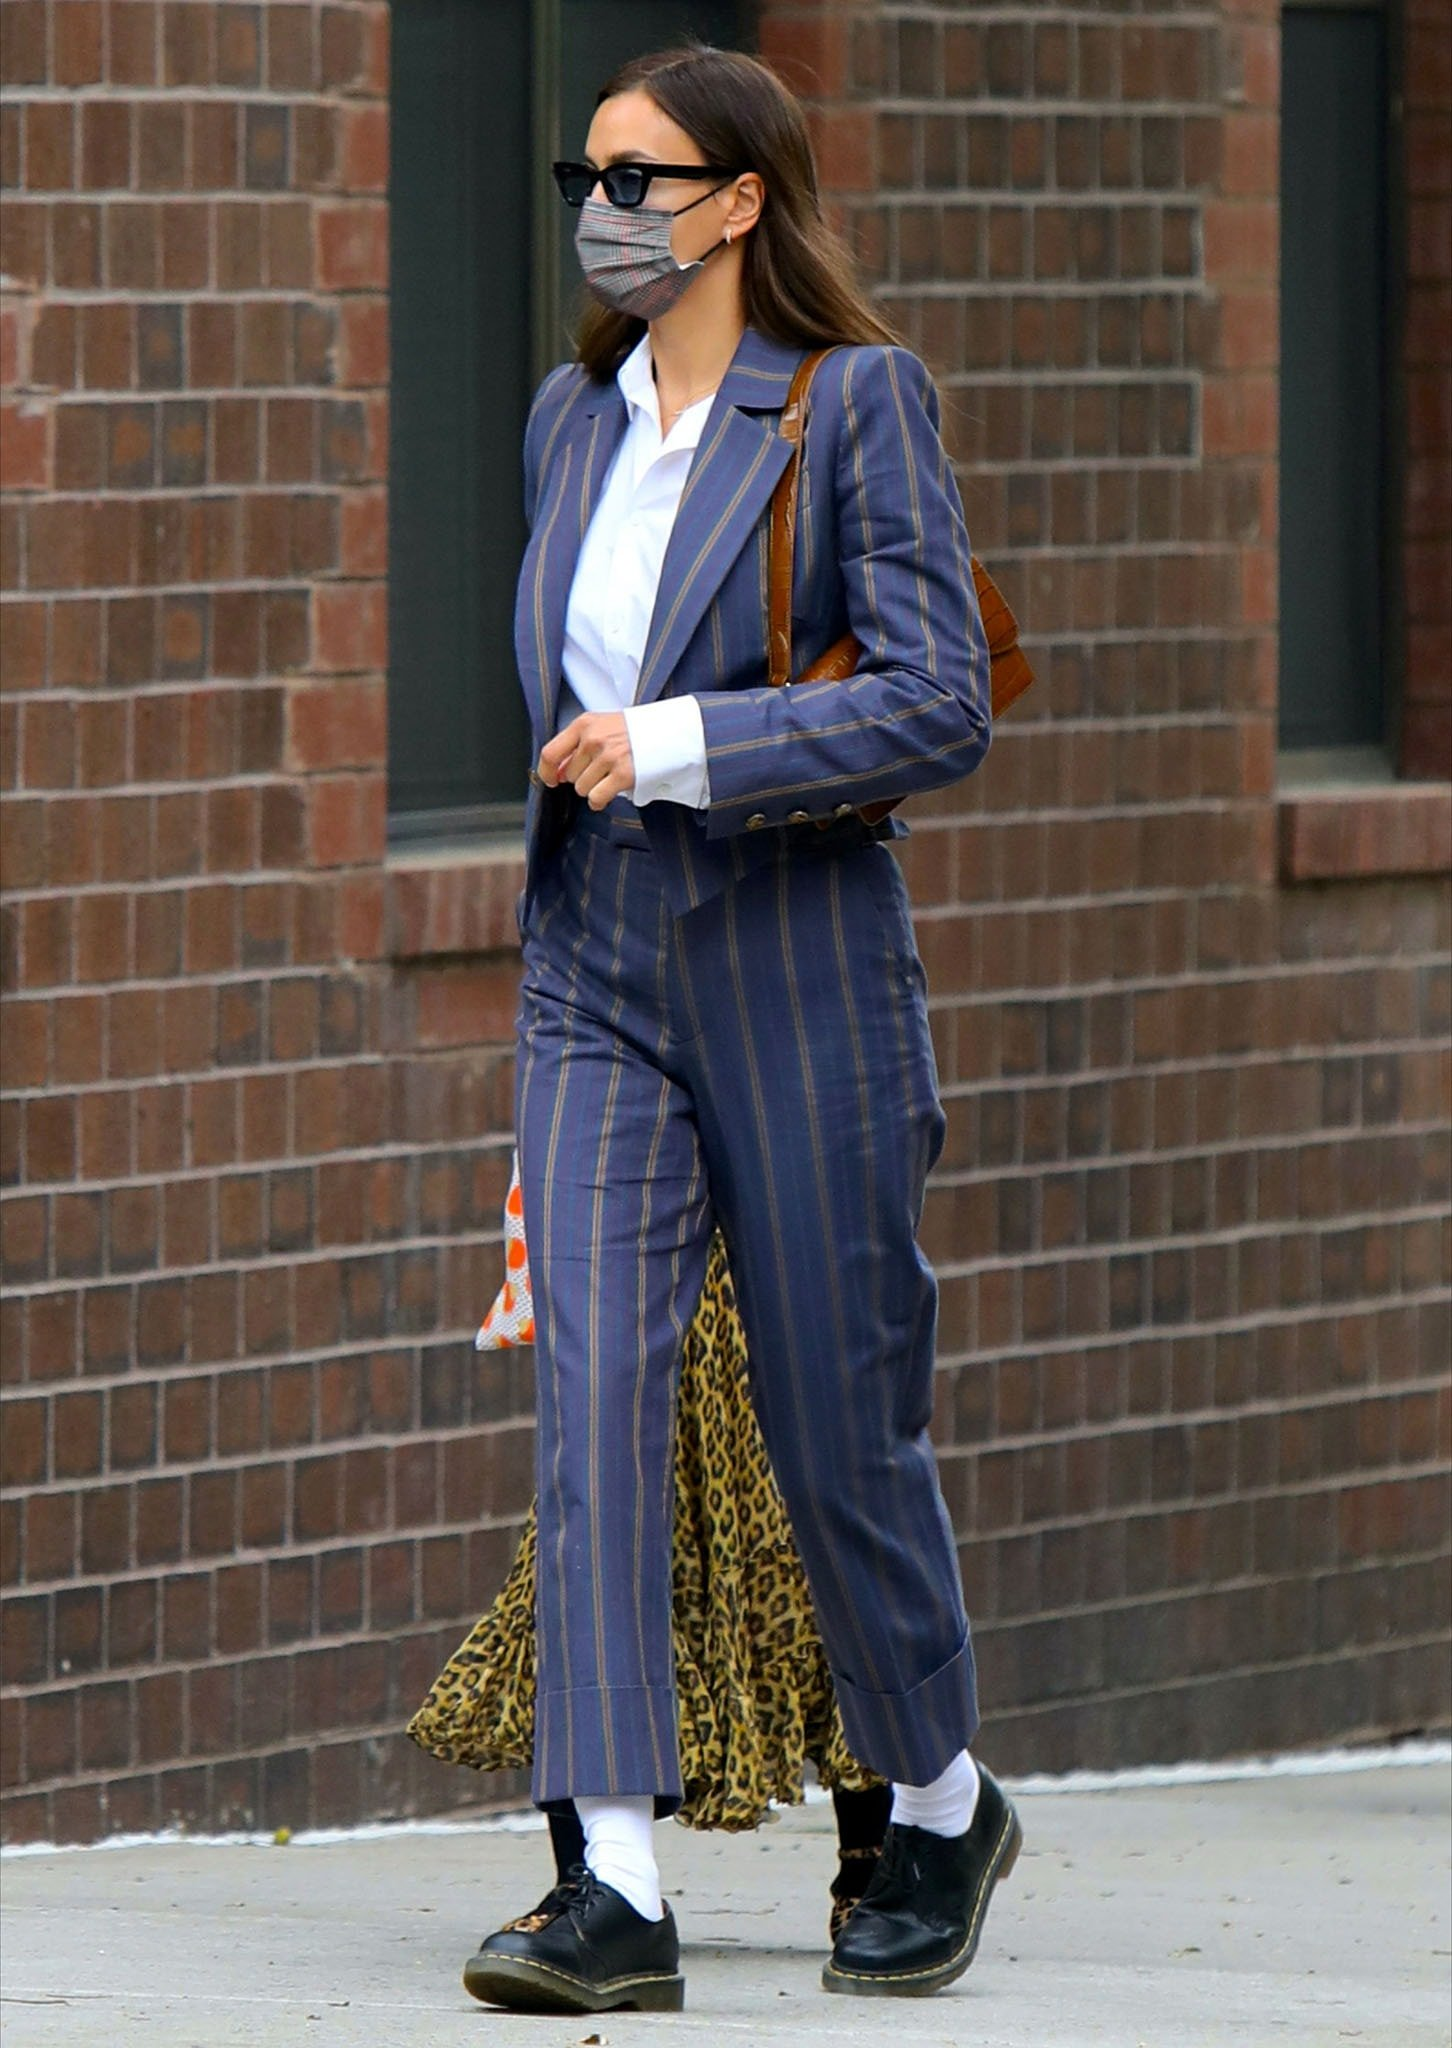 Irina Shayk looks polished in Vivienne Westwood striped suit with crisp white shirt underneath